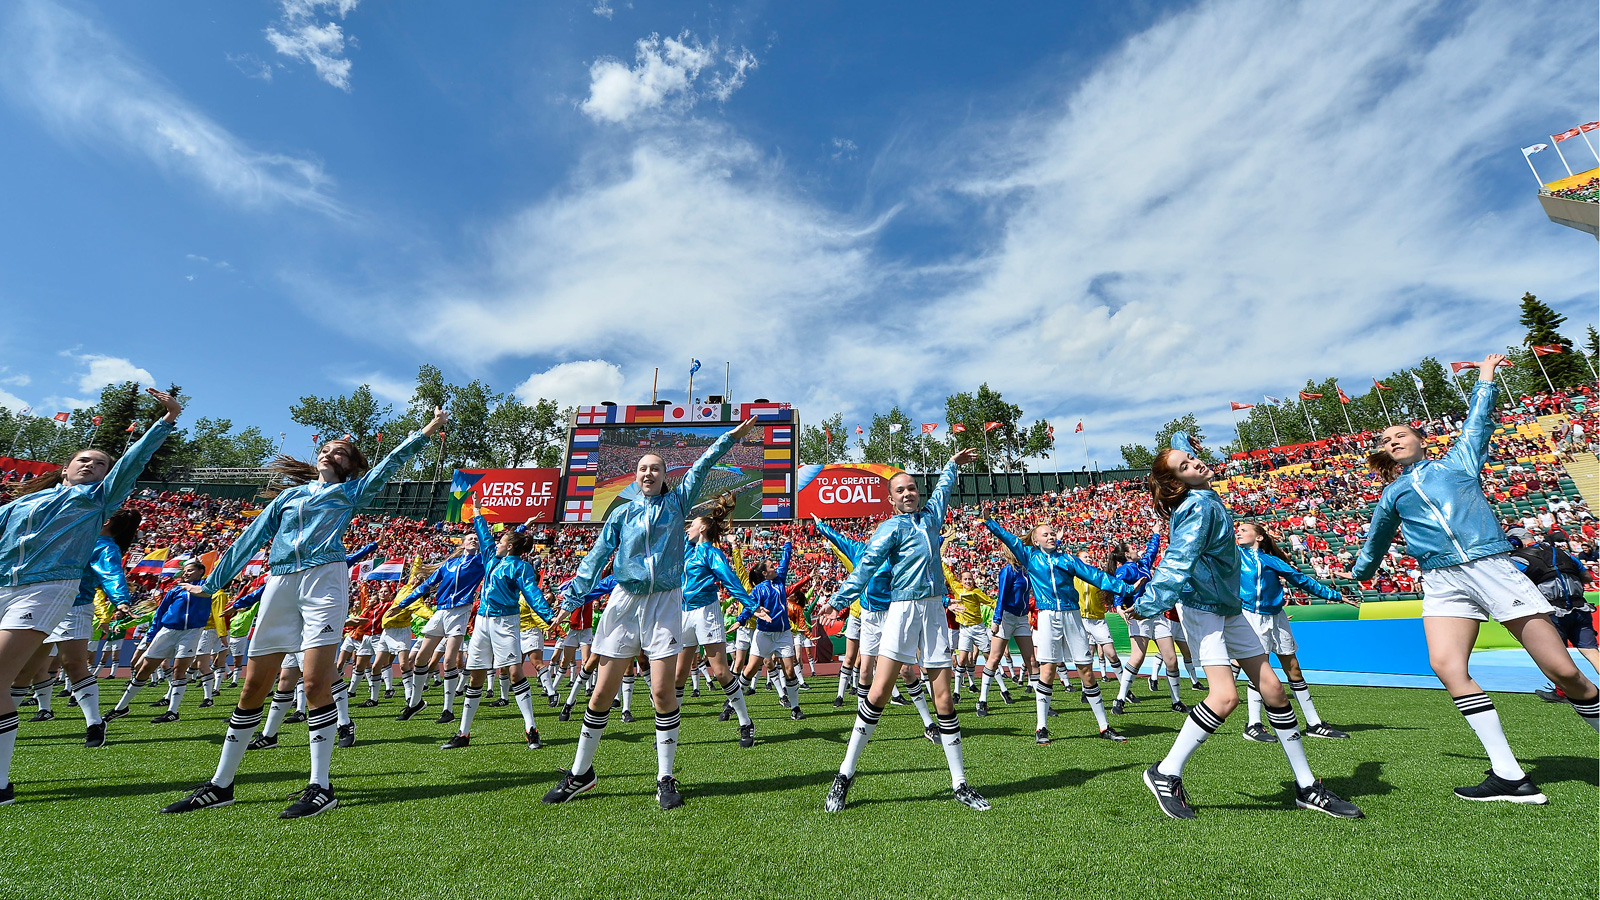 Children perform on the field at Commonwealth Stadium during the opening ceremony ahead of Canada's match vs. China.